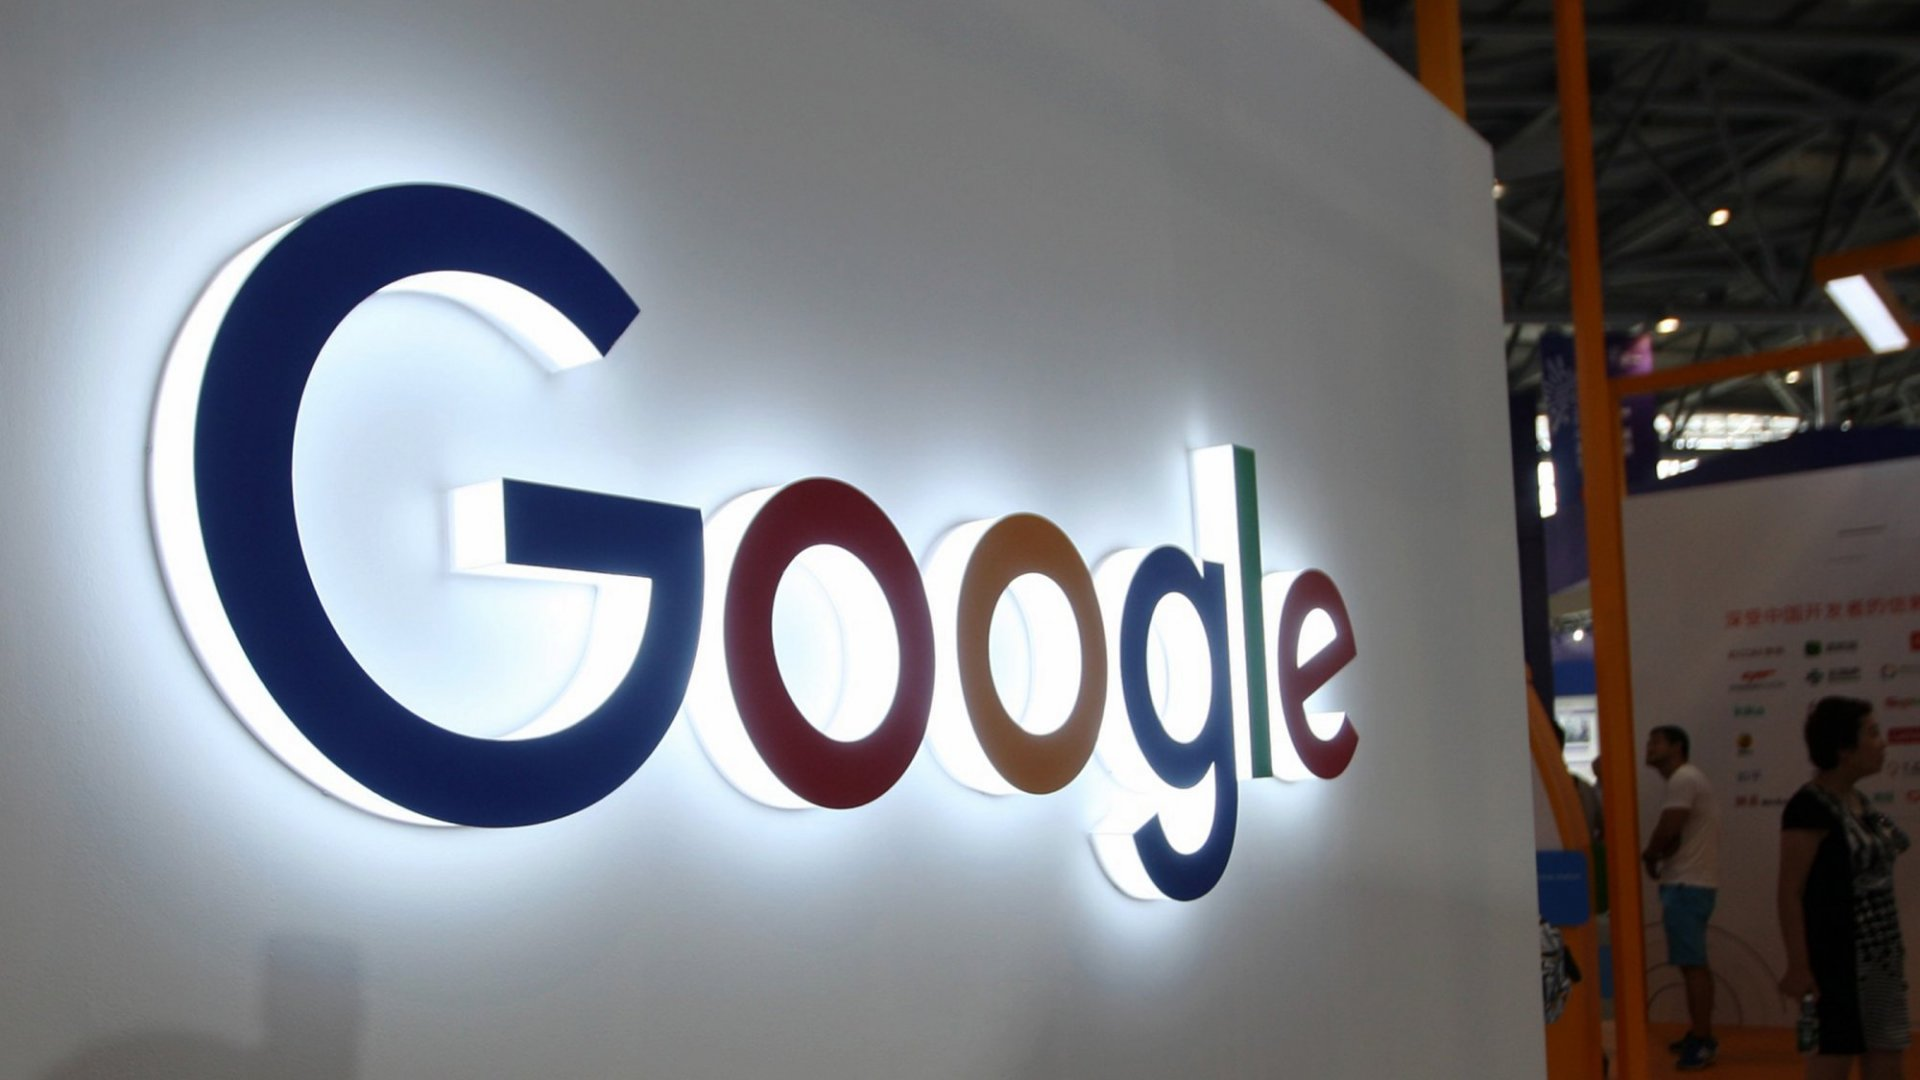 Google Spent Years on a Secret New Plan to Attack a $129 Billion Industry. It All Starts This Week